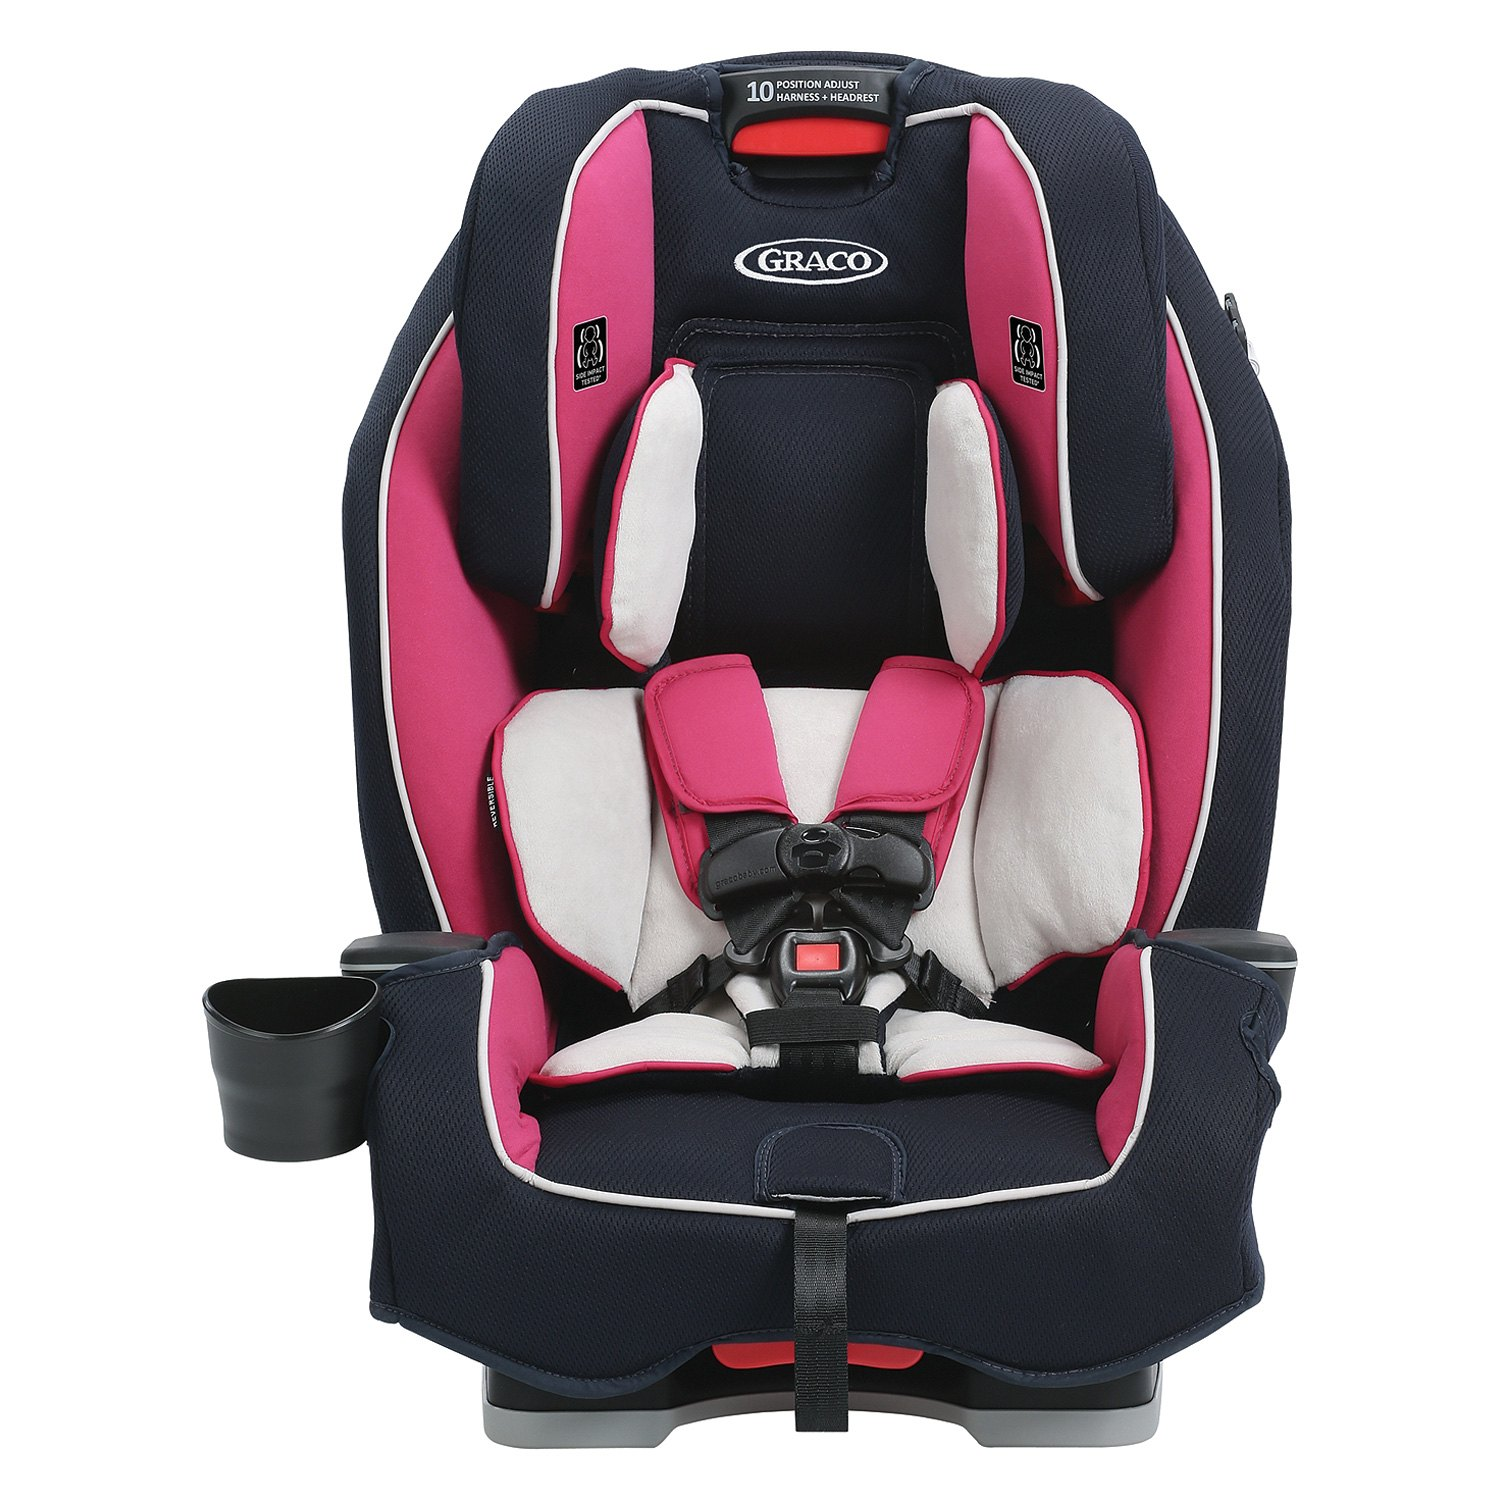 Graco Motorcycle Car Seat